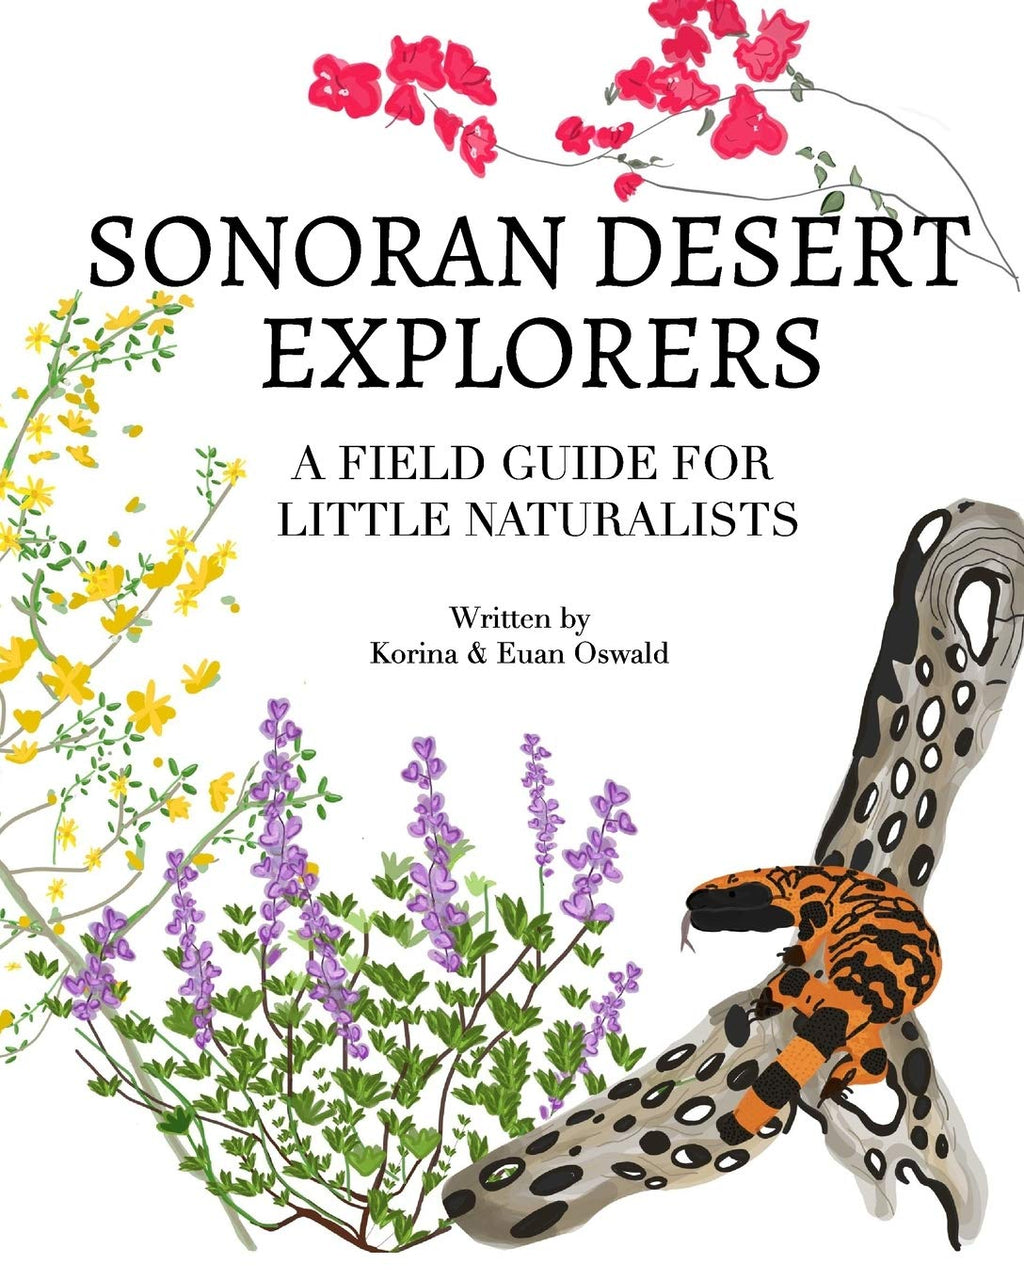 Sonoran Desert Explorers: A Field Guide for Little Naturalists